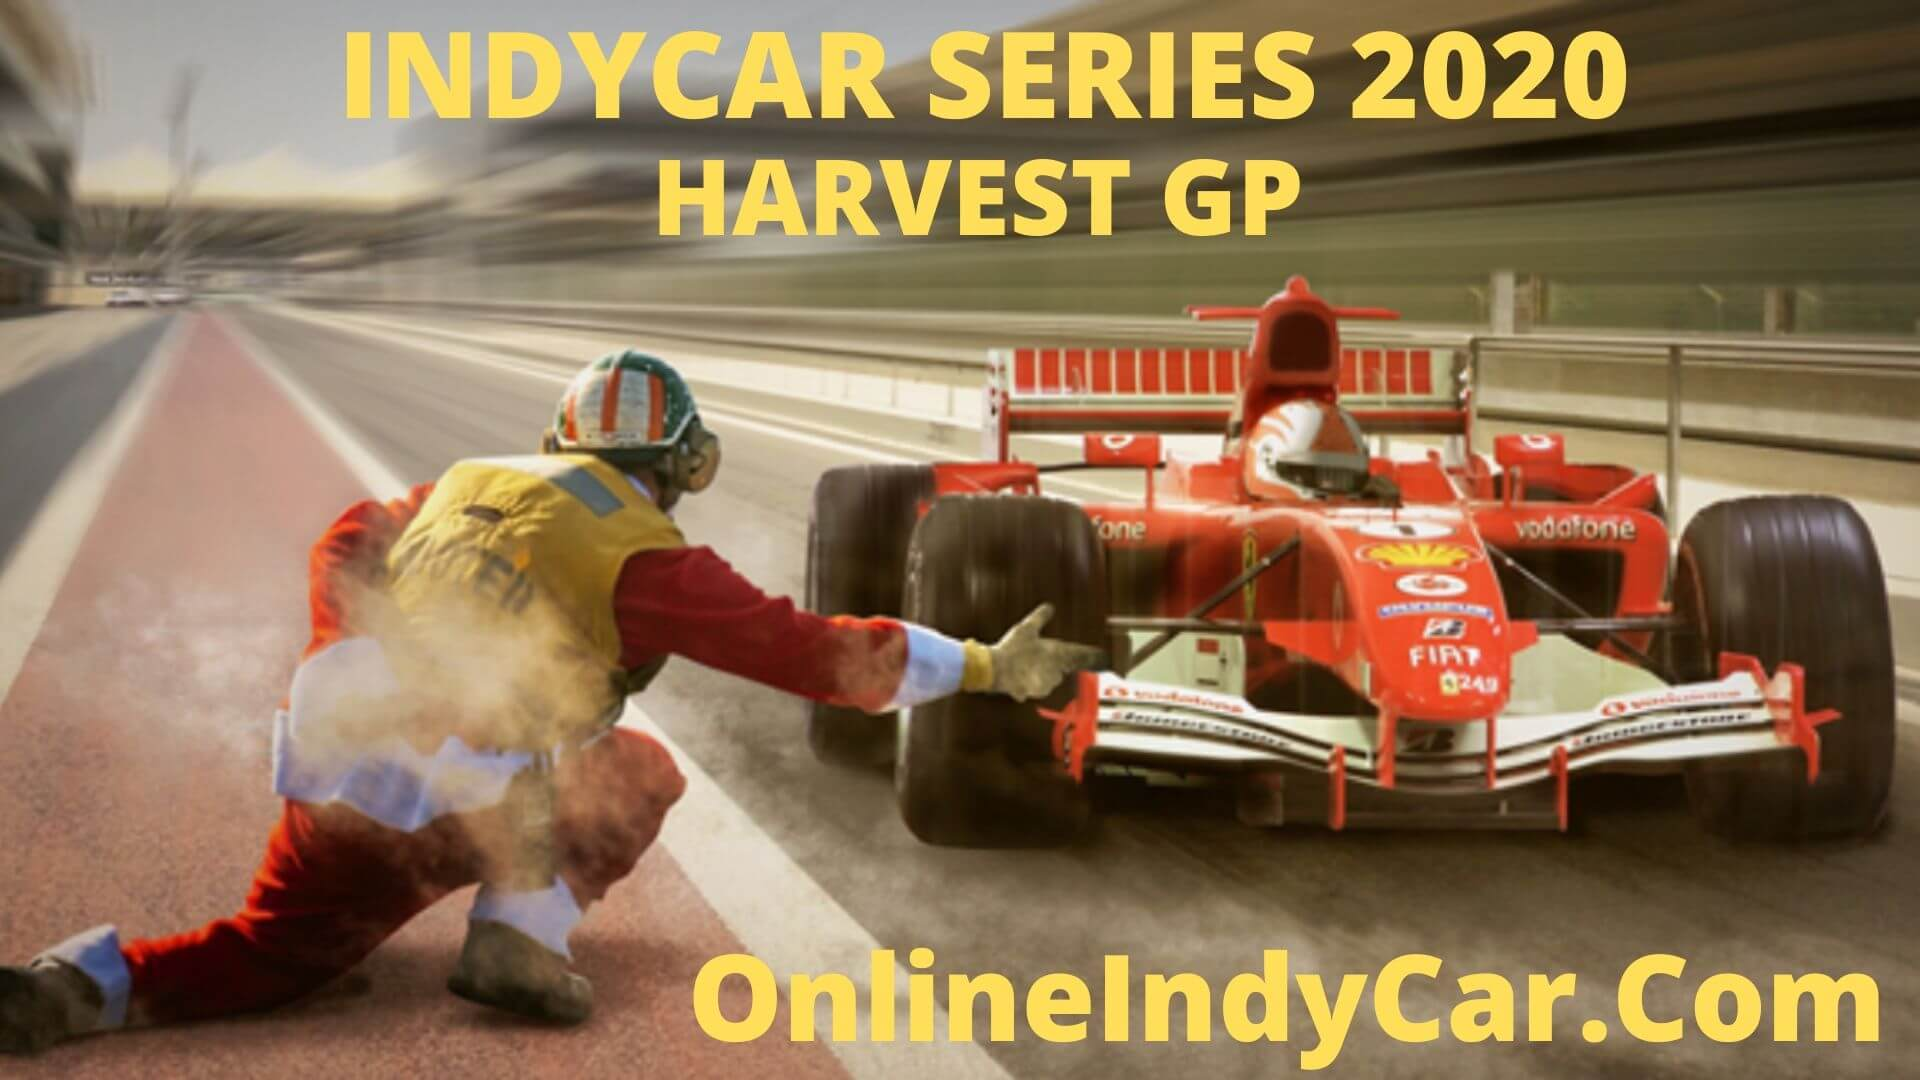 Indycar Harvest GP Live Stream at Indianapolis